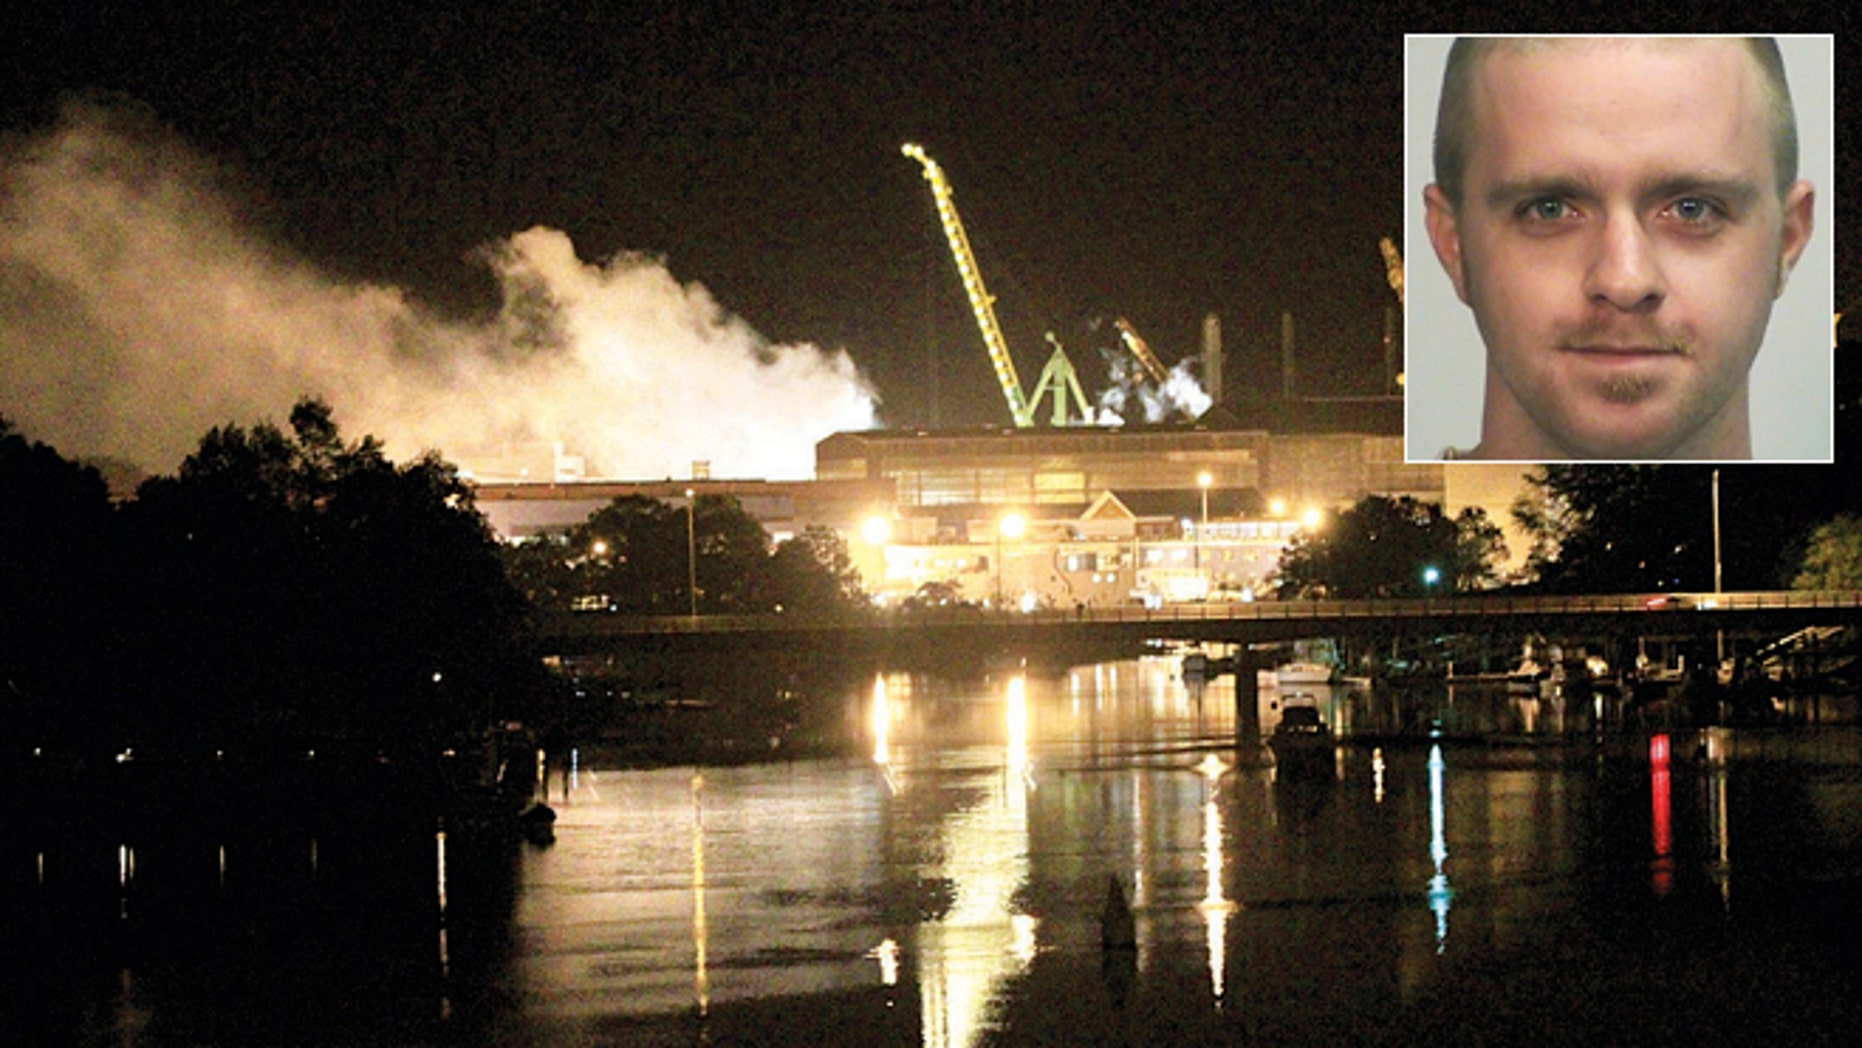 FILE: Smoke rises from a dry dock as fire crews respond to a fire on the USS Miami SSN 755 submarine at the Portsmouth Naval Shipyard. Casey James Fury waived indictment and pleaded guilty Thursday to two counts of arson.